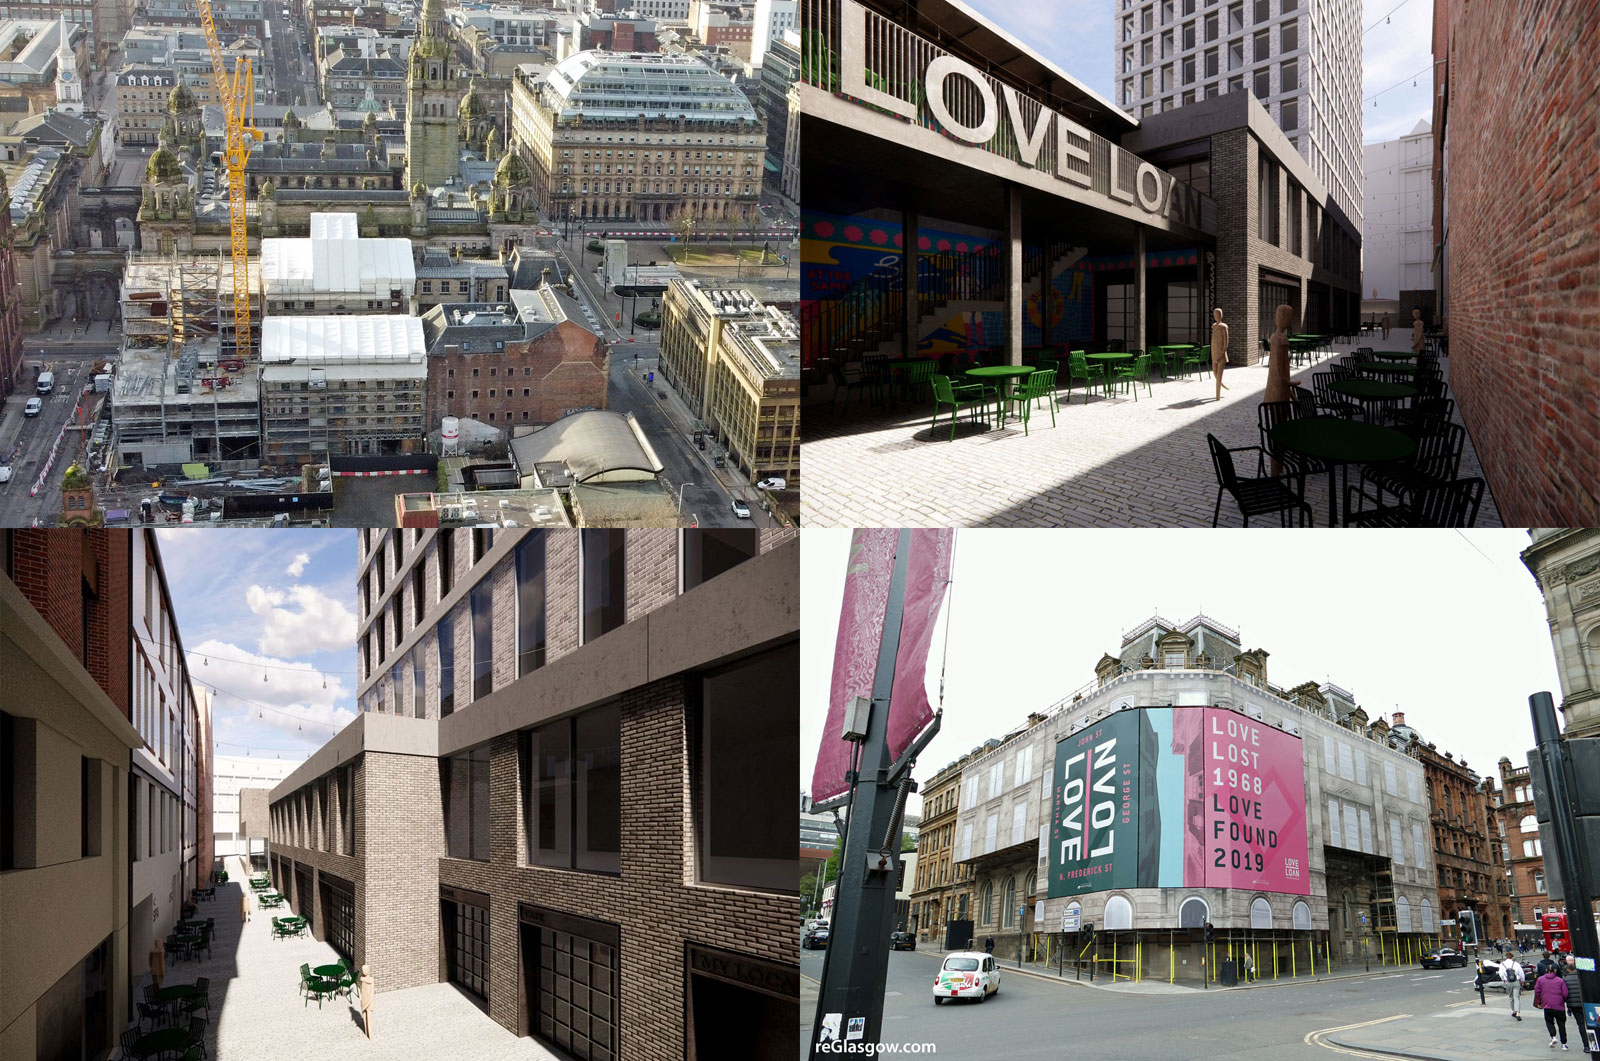 COUNCIL Agree Public Realm Cash To Support Love Loan Development